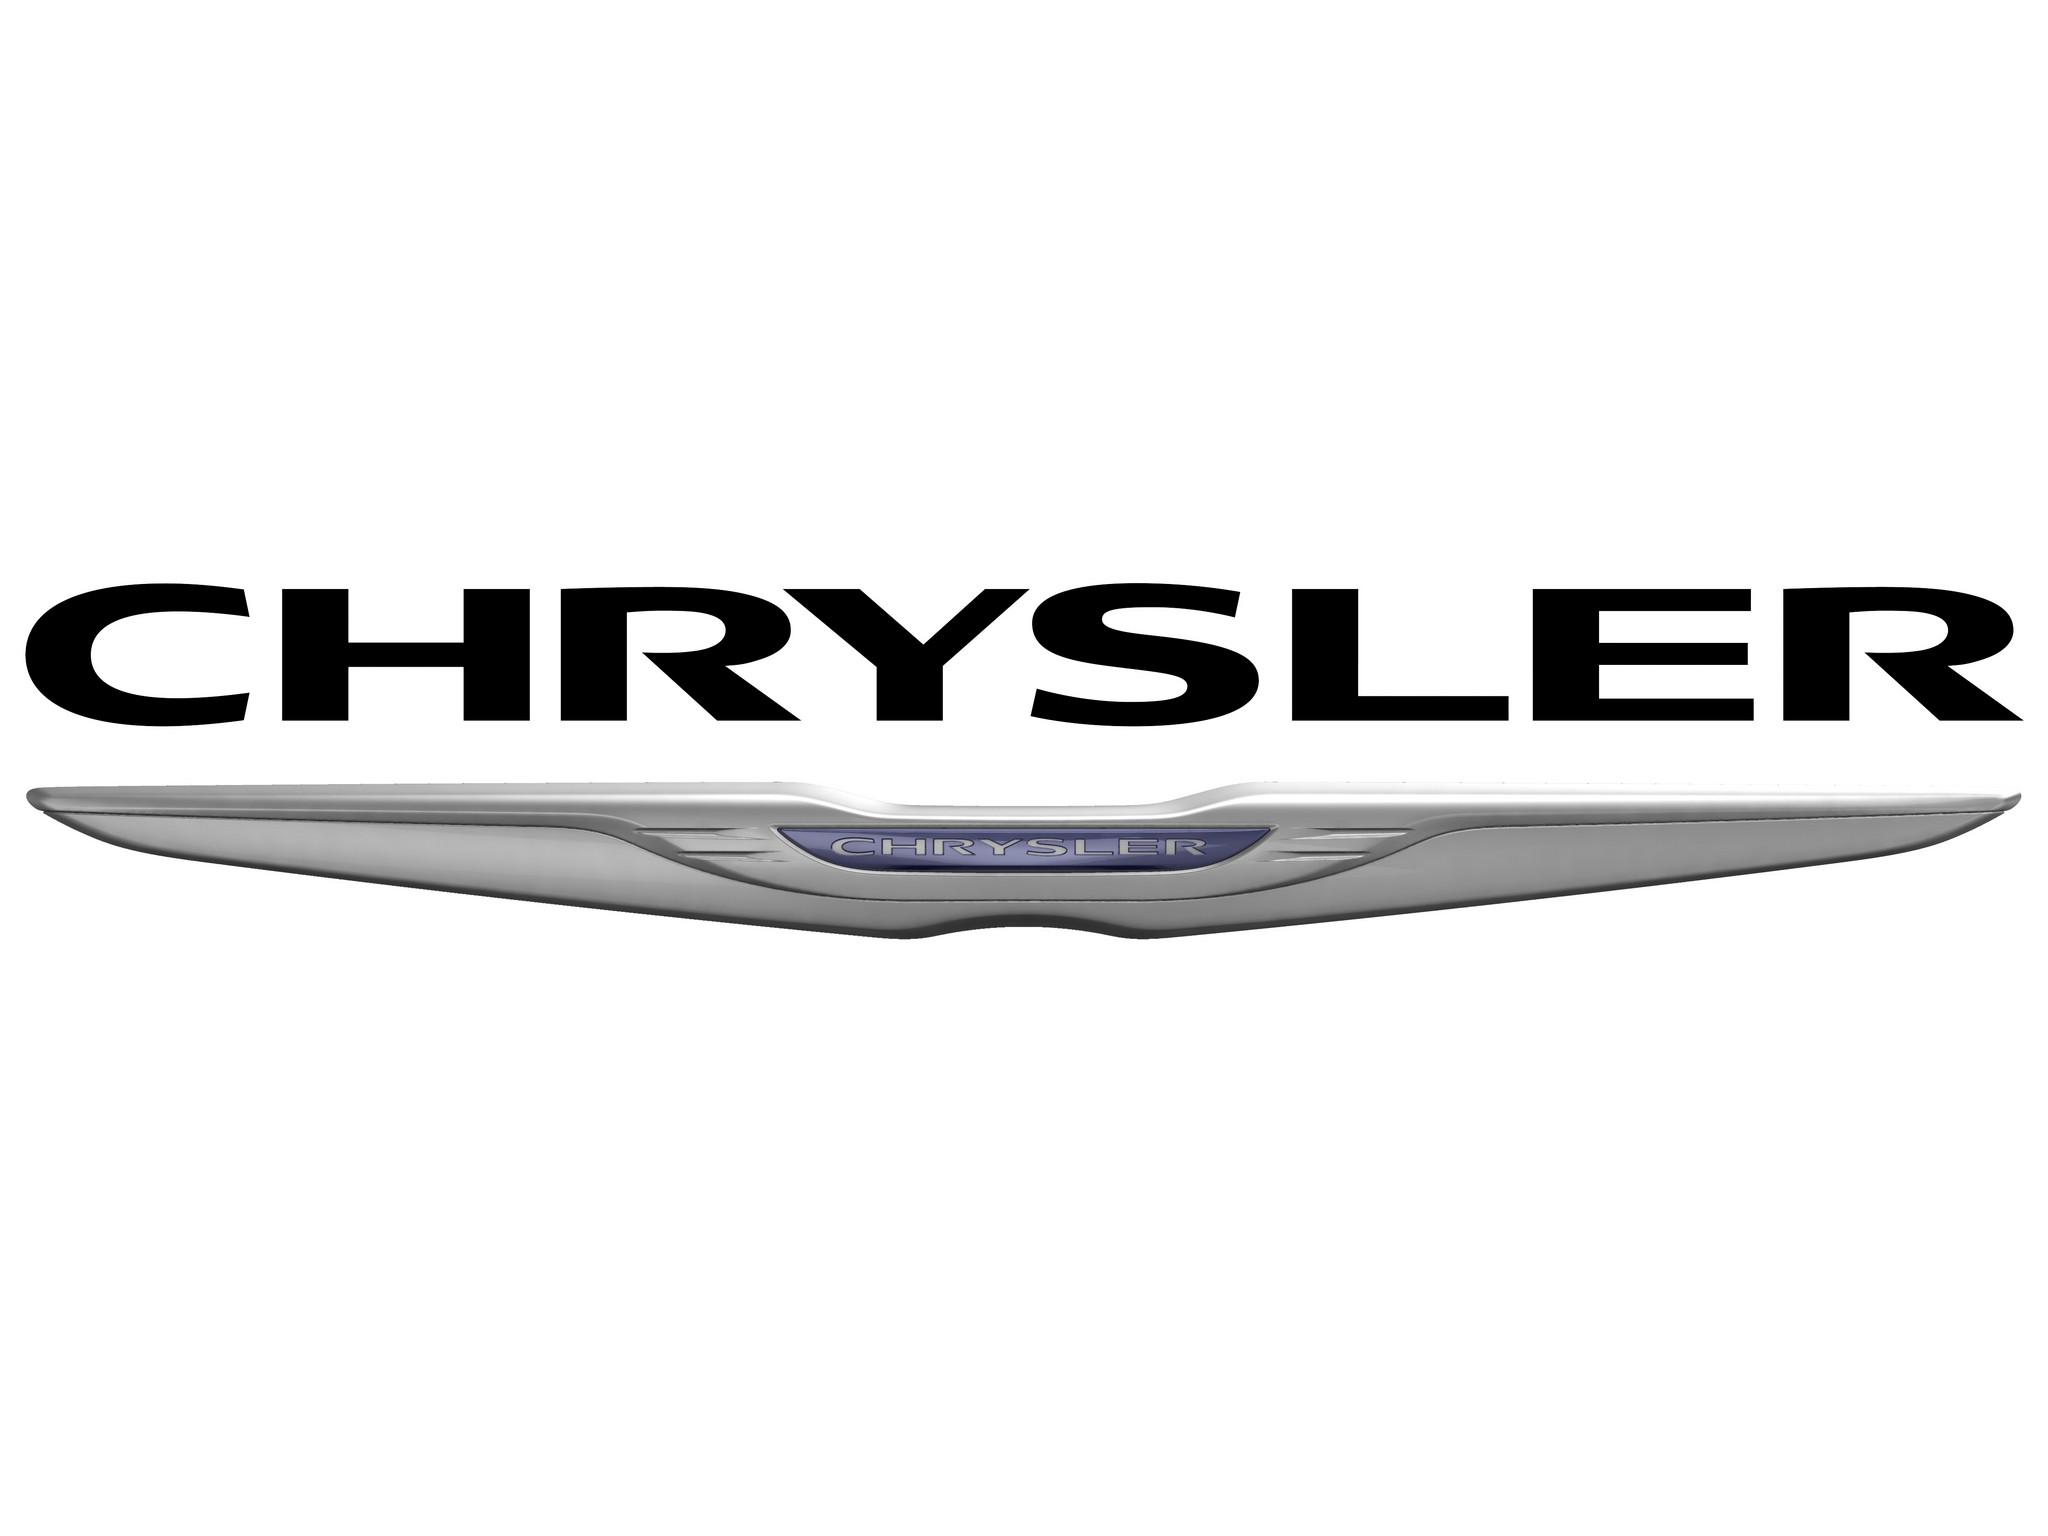 Chrysler-emblem.jpg